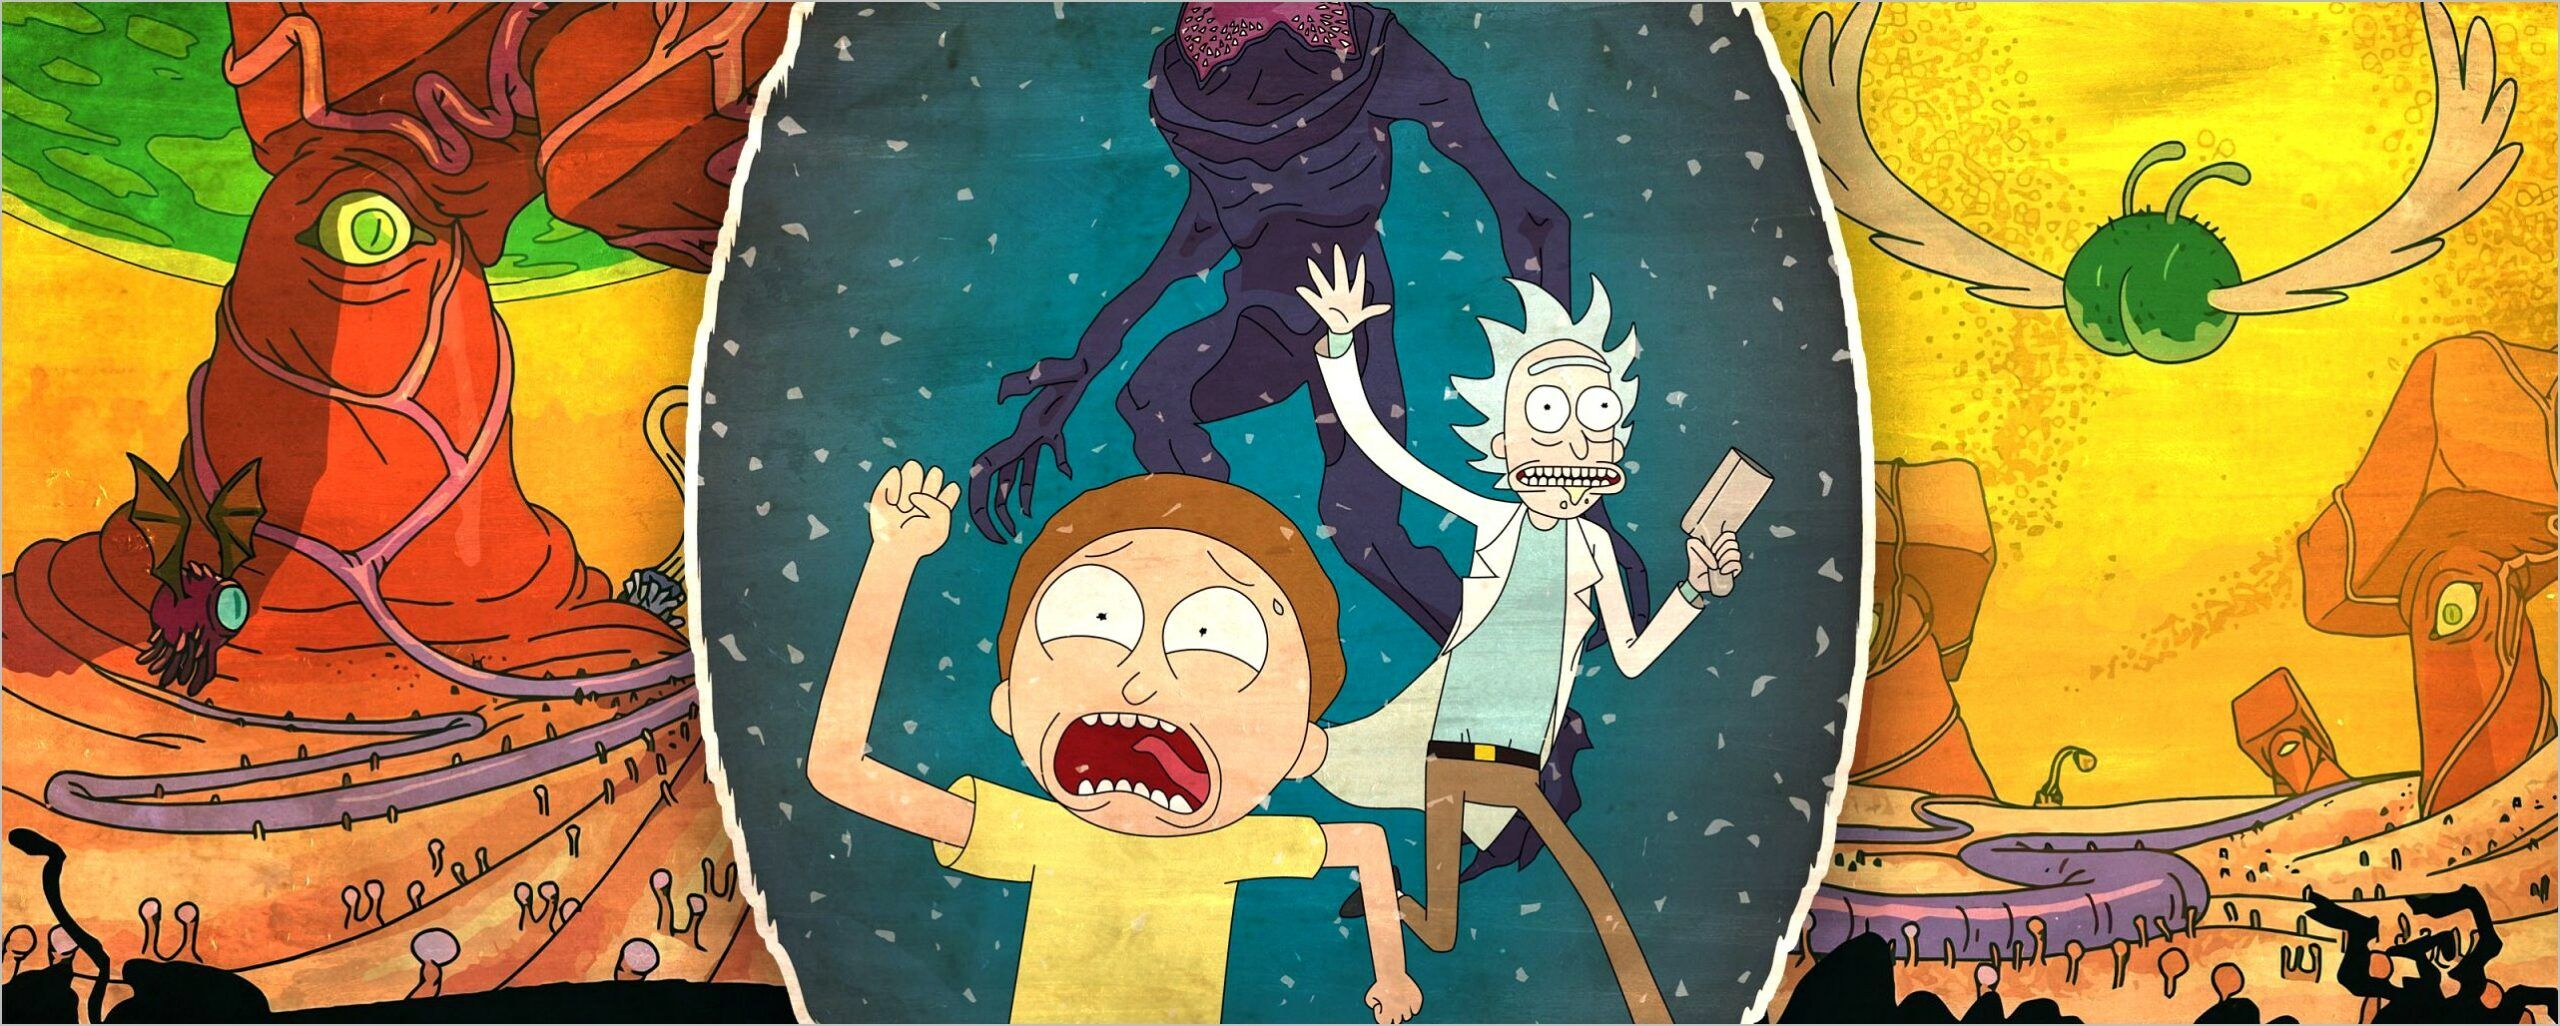 4k Wallpaper Rick And Morty Dual Monitor In 2020 Cartoon Wallpaper Dual Screen Wallpaper Graphic Wallpaper